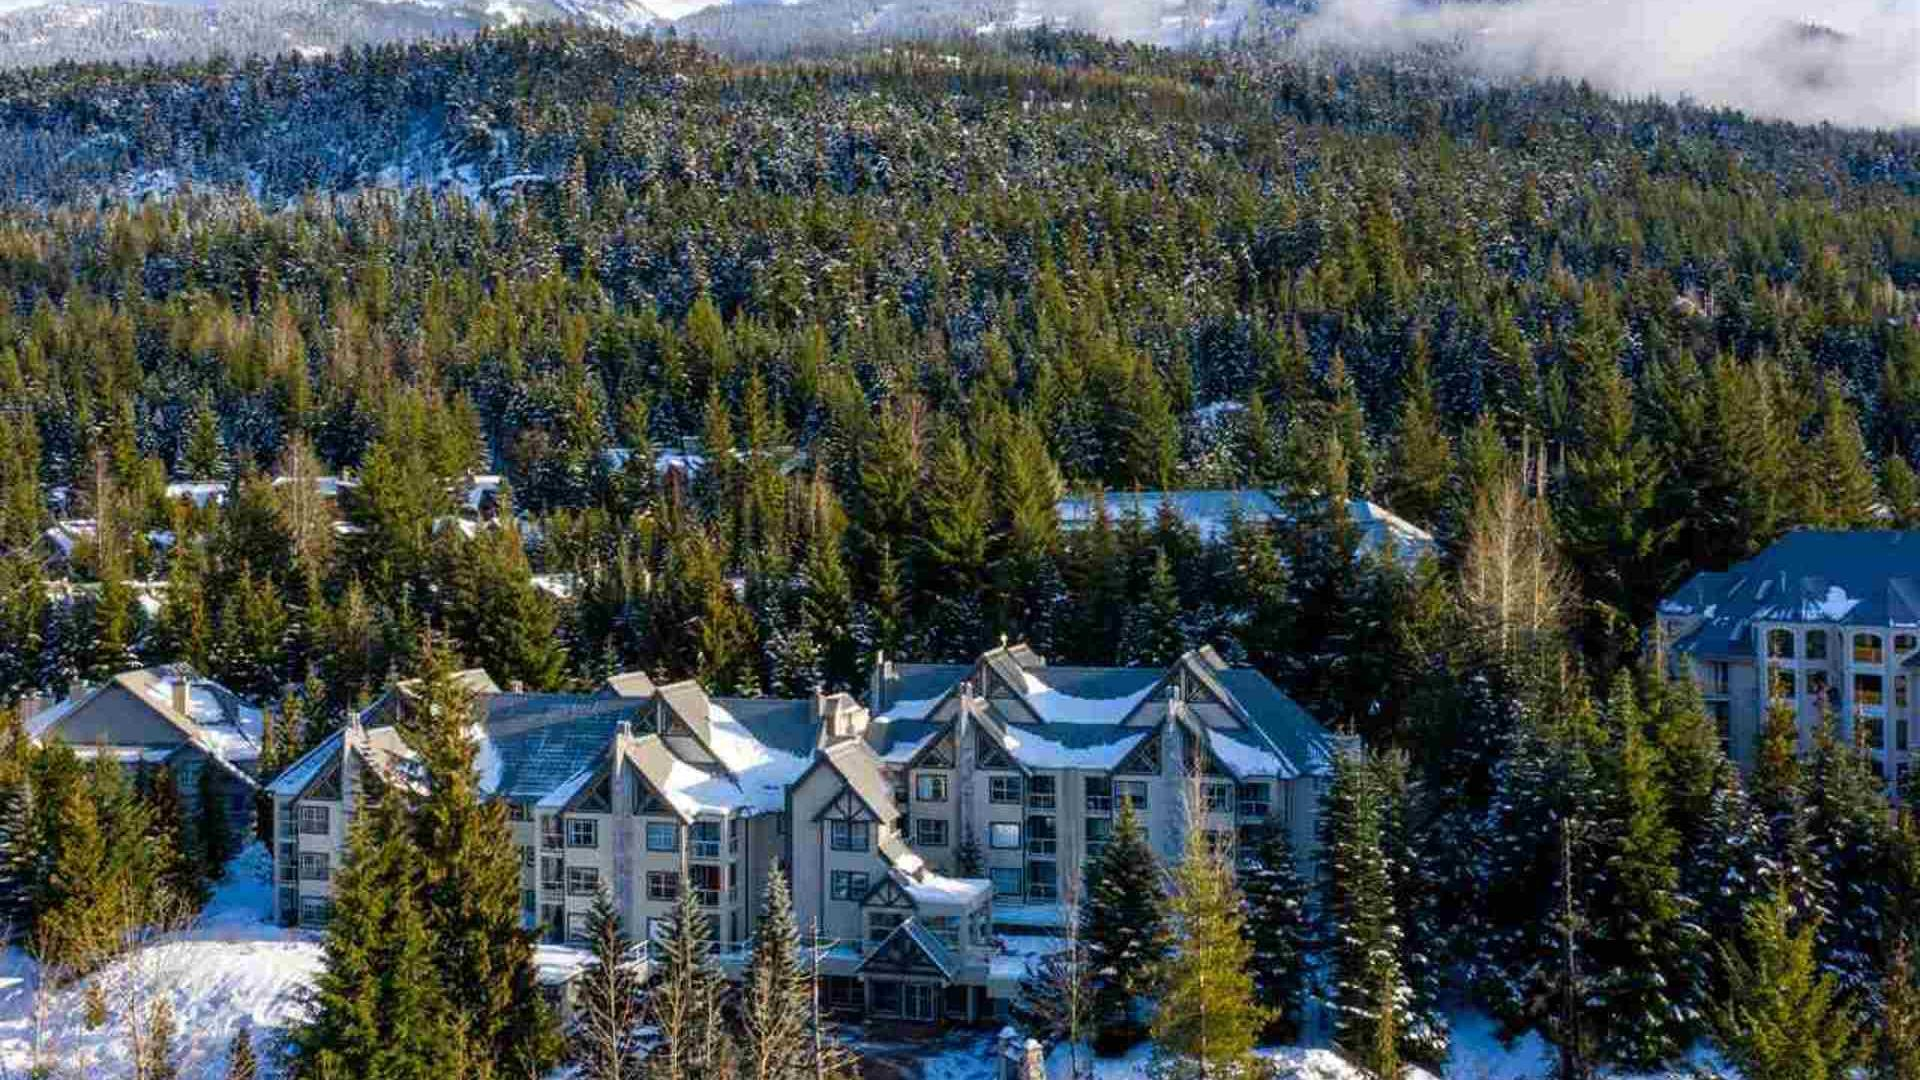 302 - 4749 Spearhead Drive, Benchlands, Whistler